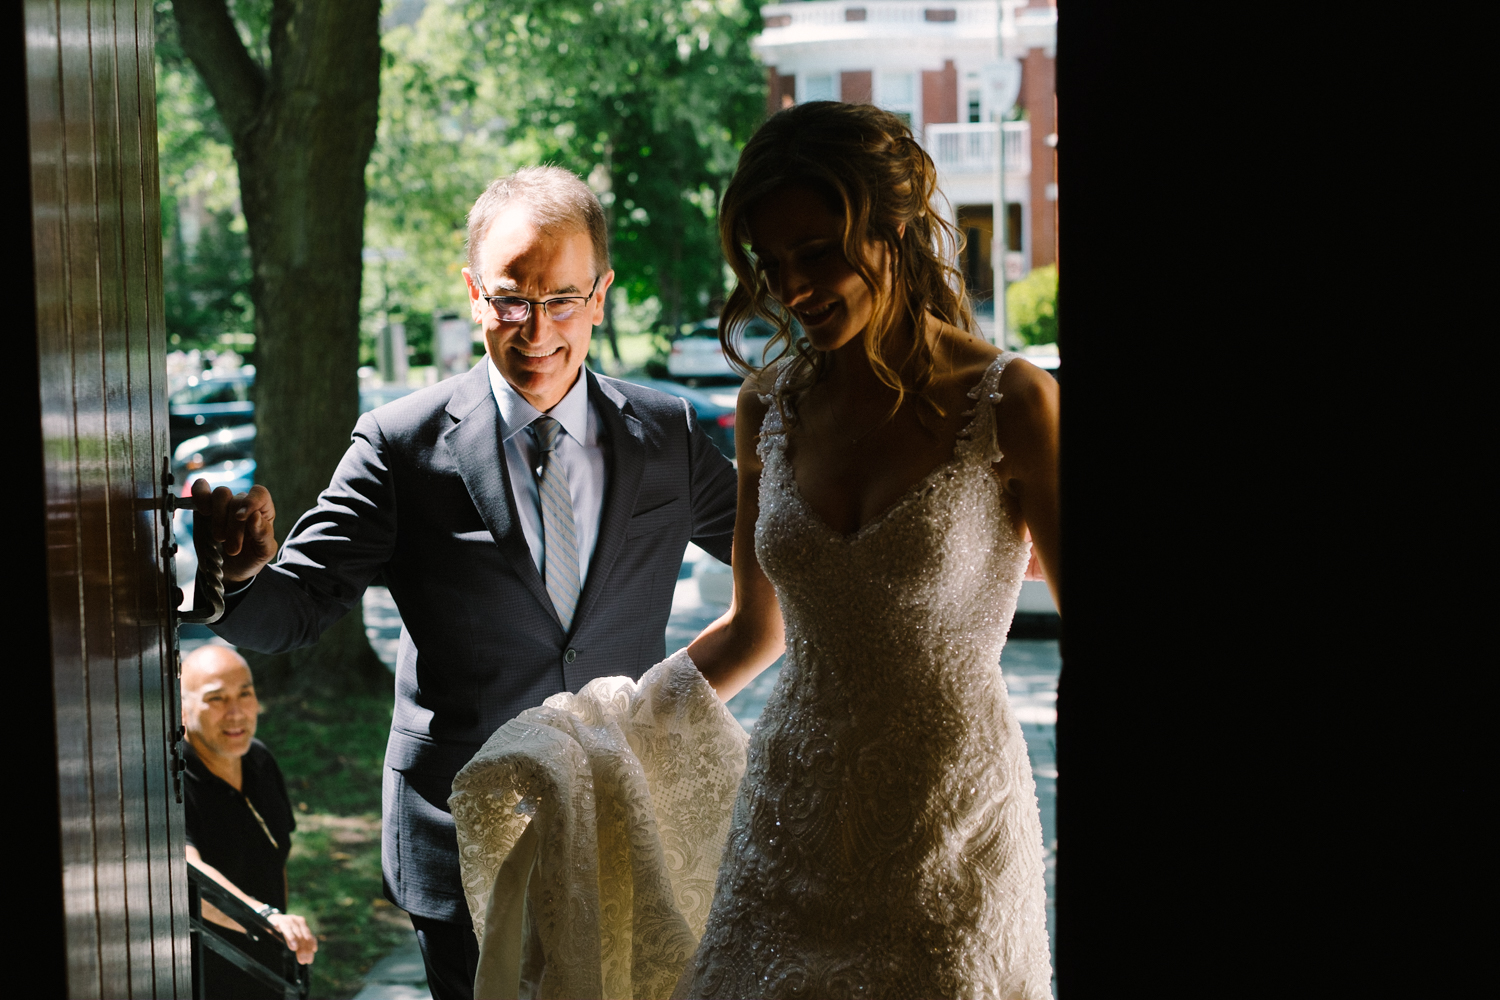 Montreal Toronto Wedding Photographer331.jpg